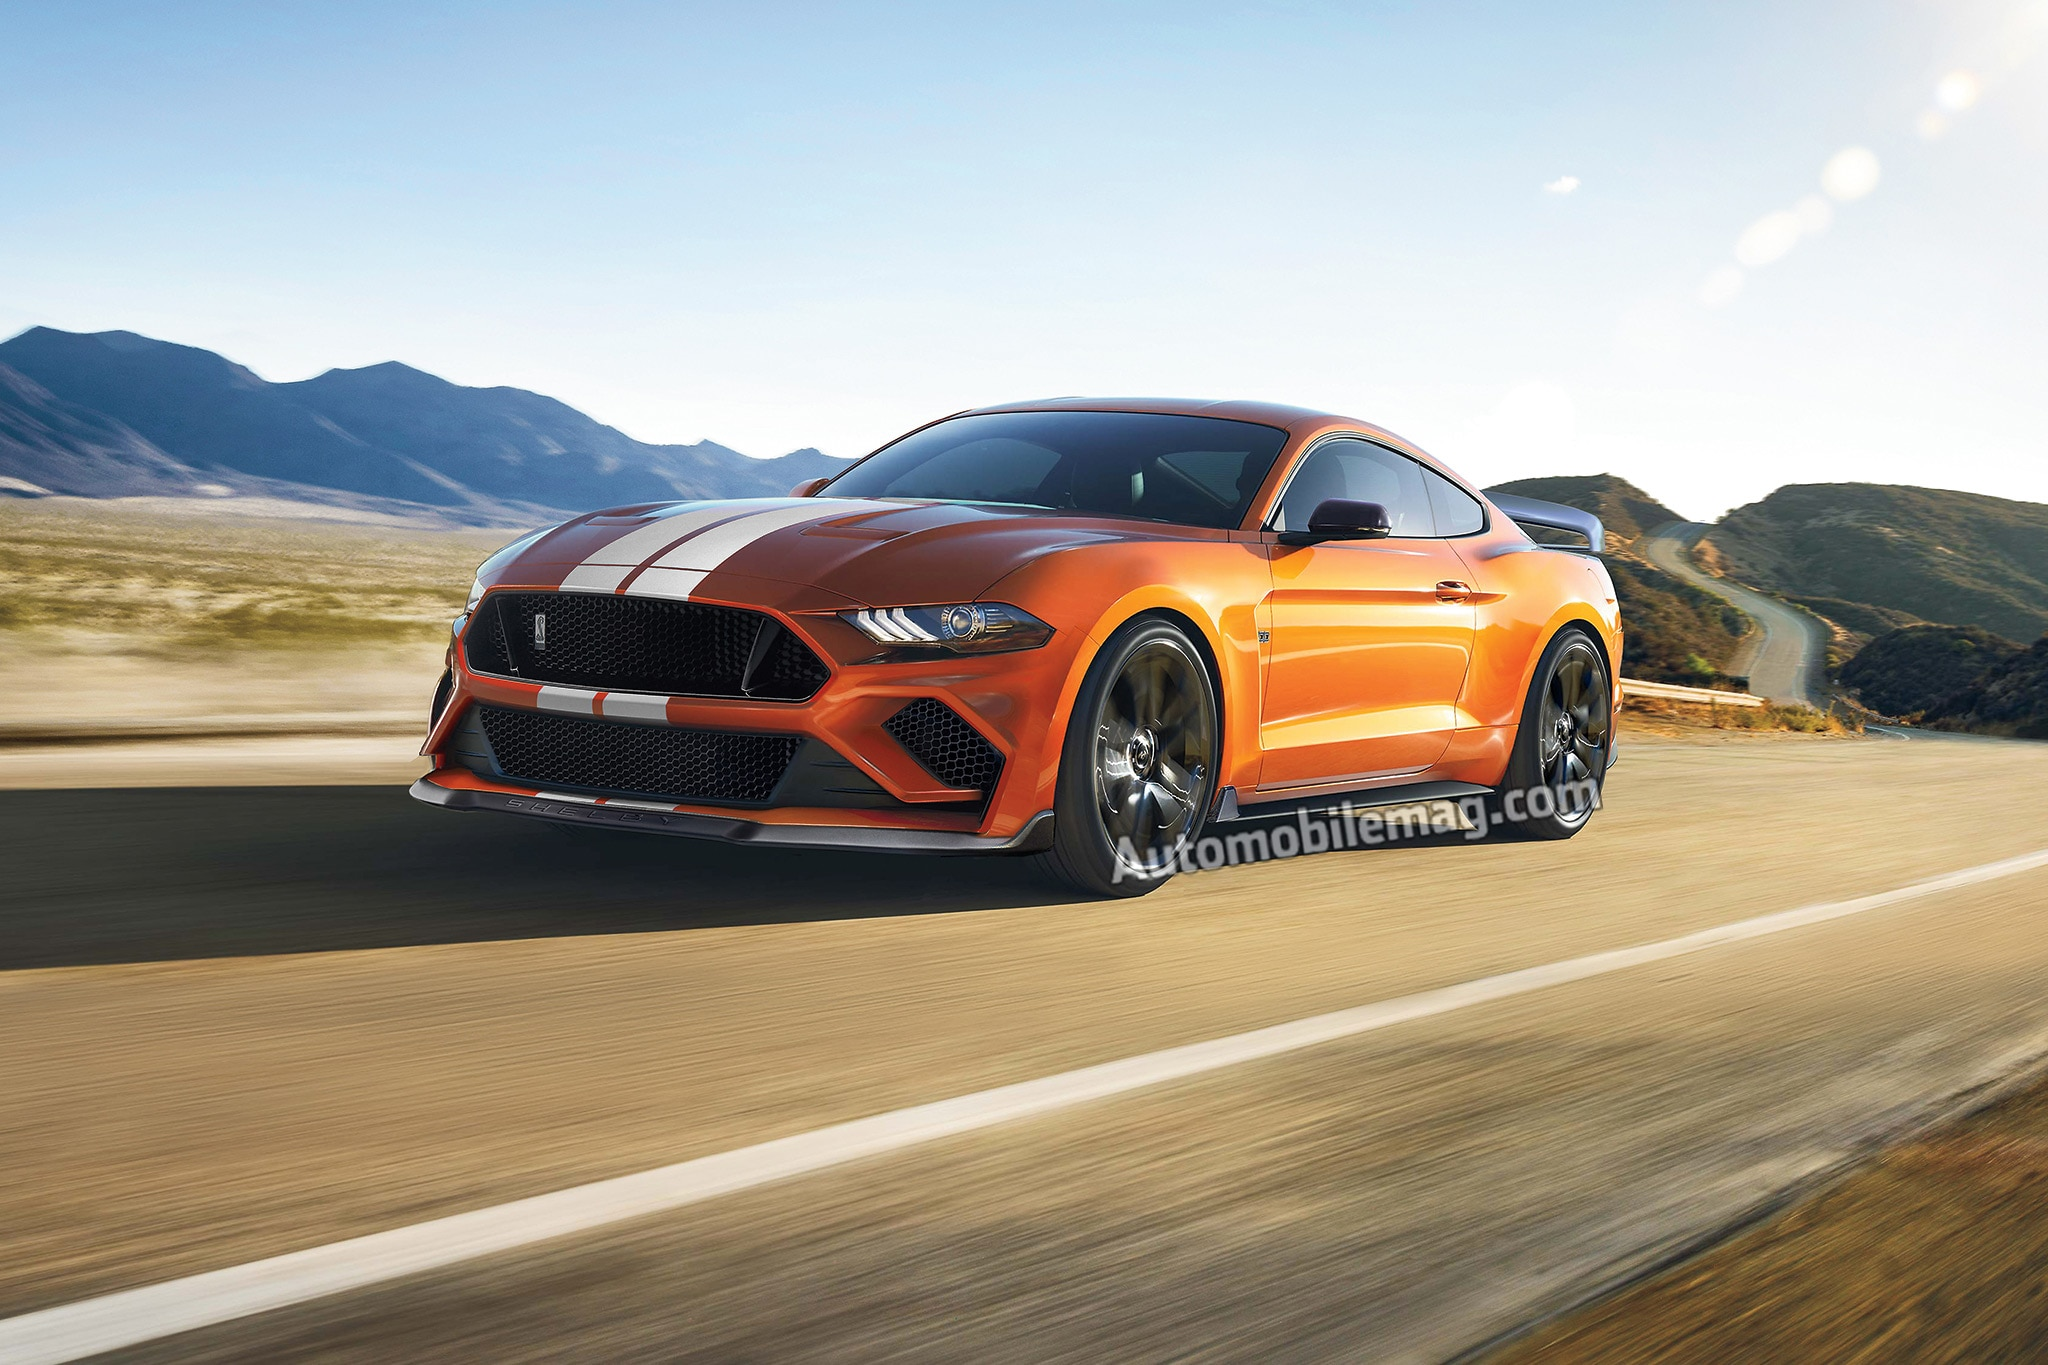 2019 Ford Shelby Mustang GT500 Illustration